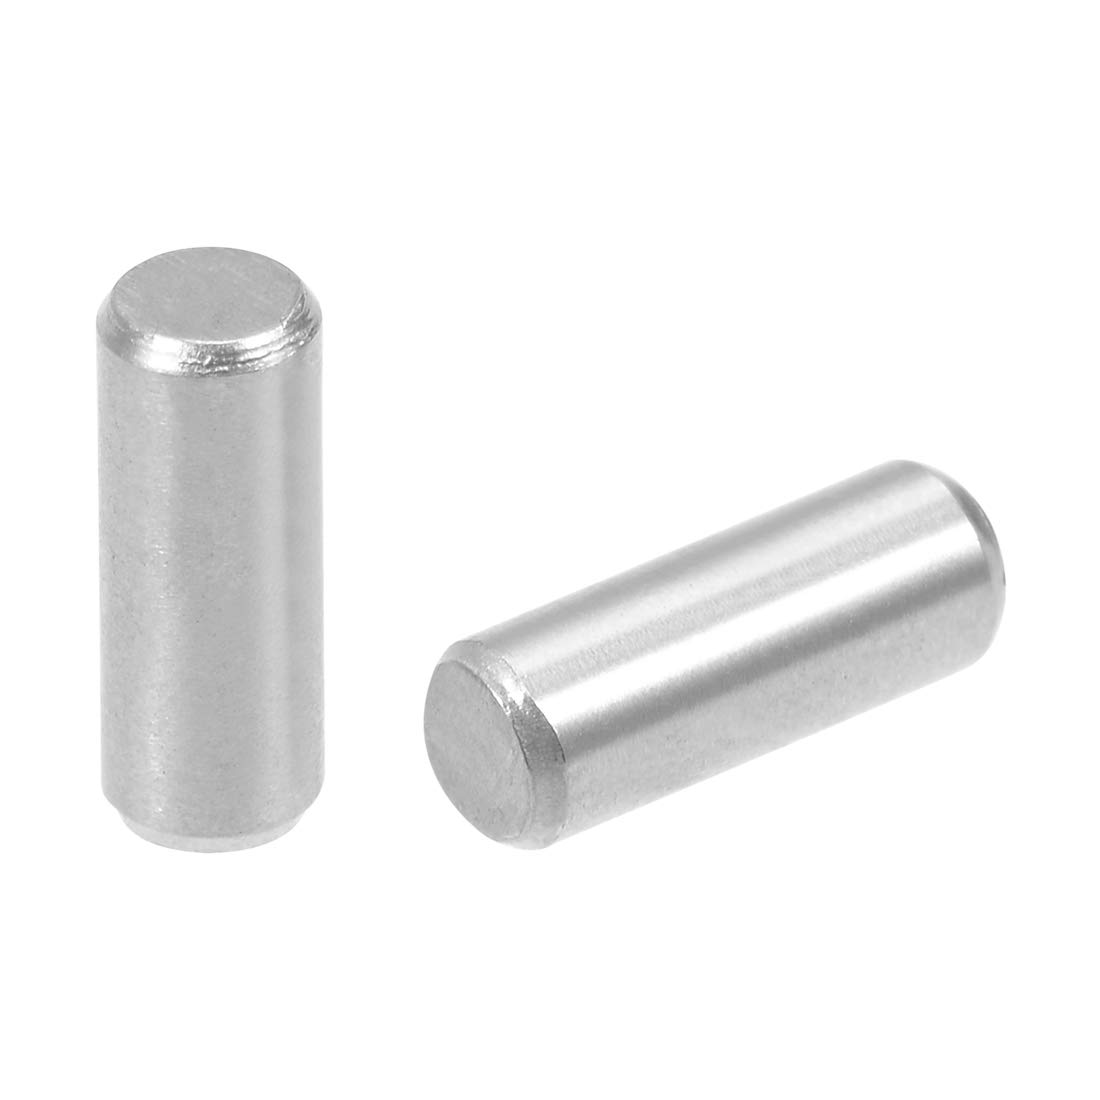 uxcell 50Pcs 3mm x 8mm Dowel Pin 304 Stainless Steel Wood Bunk Bed Dowel Pins Shelf Pegs Support Shelves Silver Tone